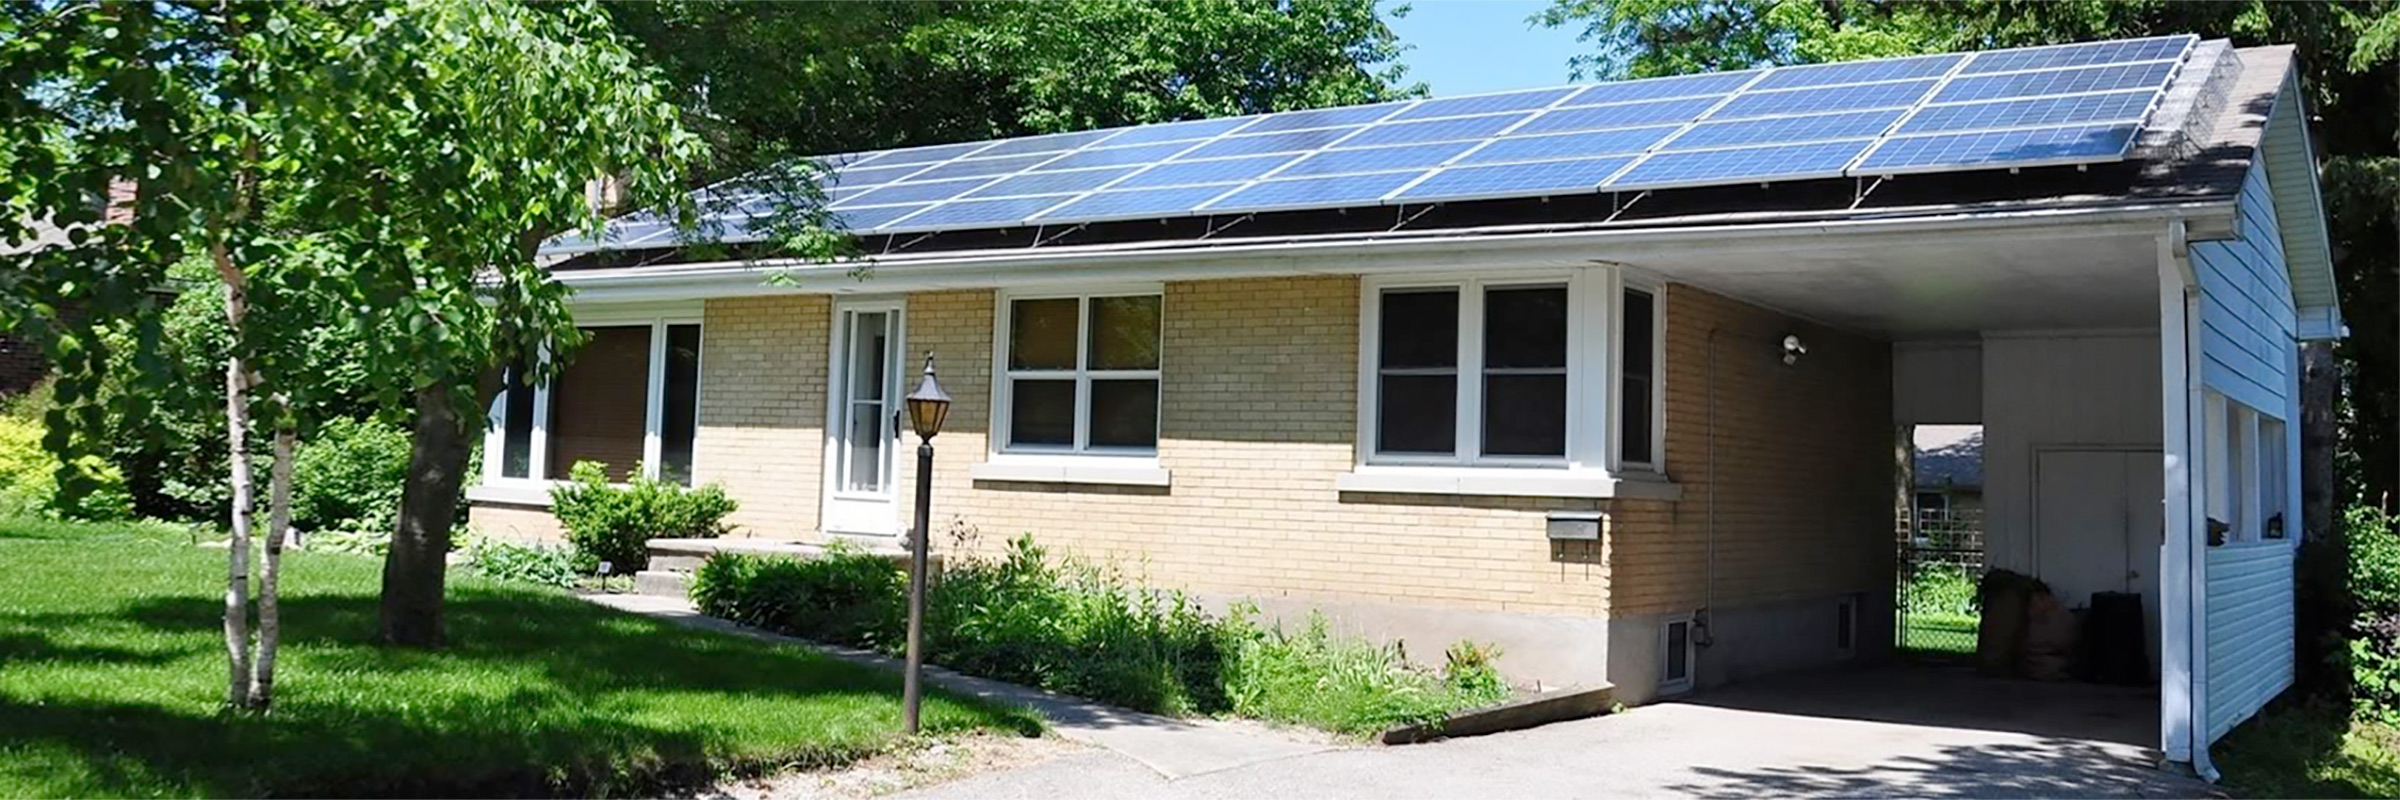 Home with solar